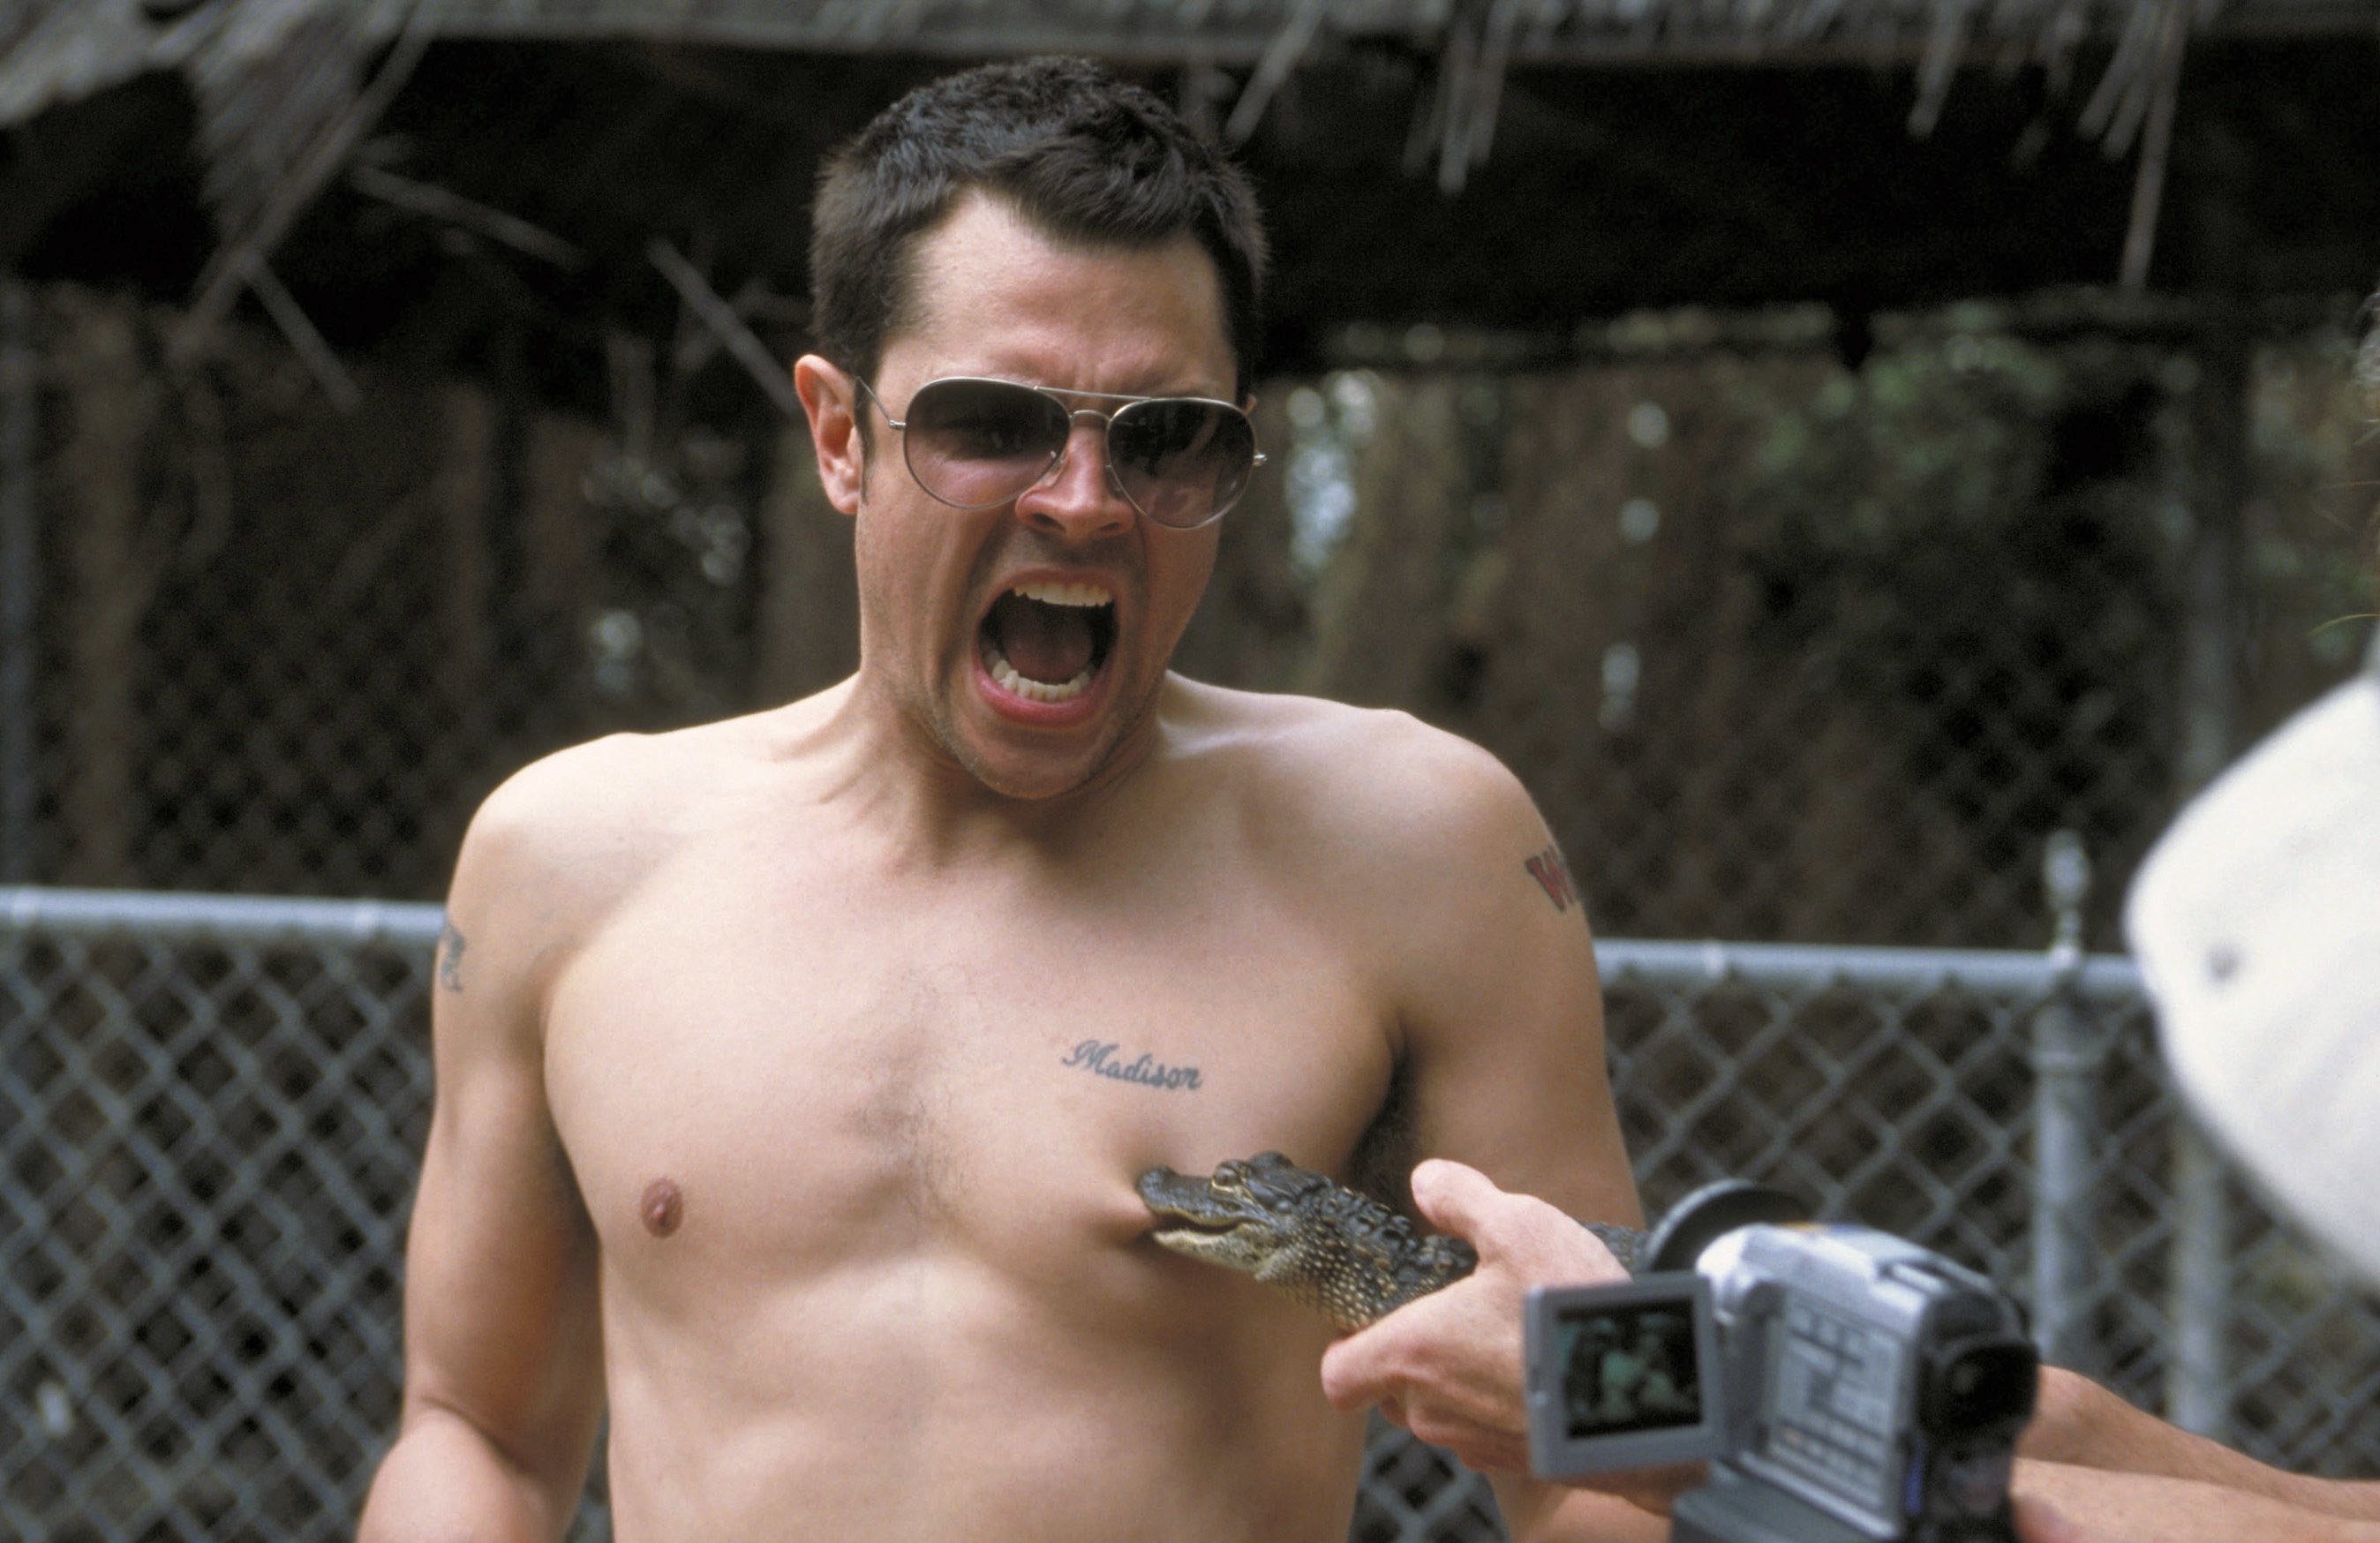 Johnny Knoxville getting bitten by the mini alligator